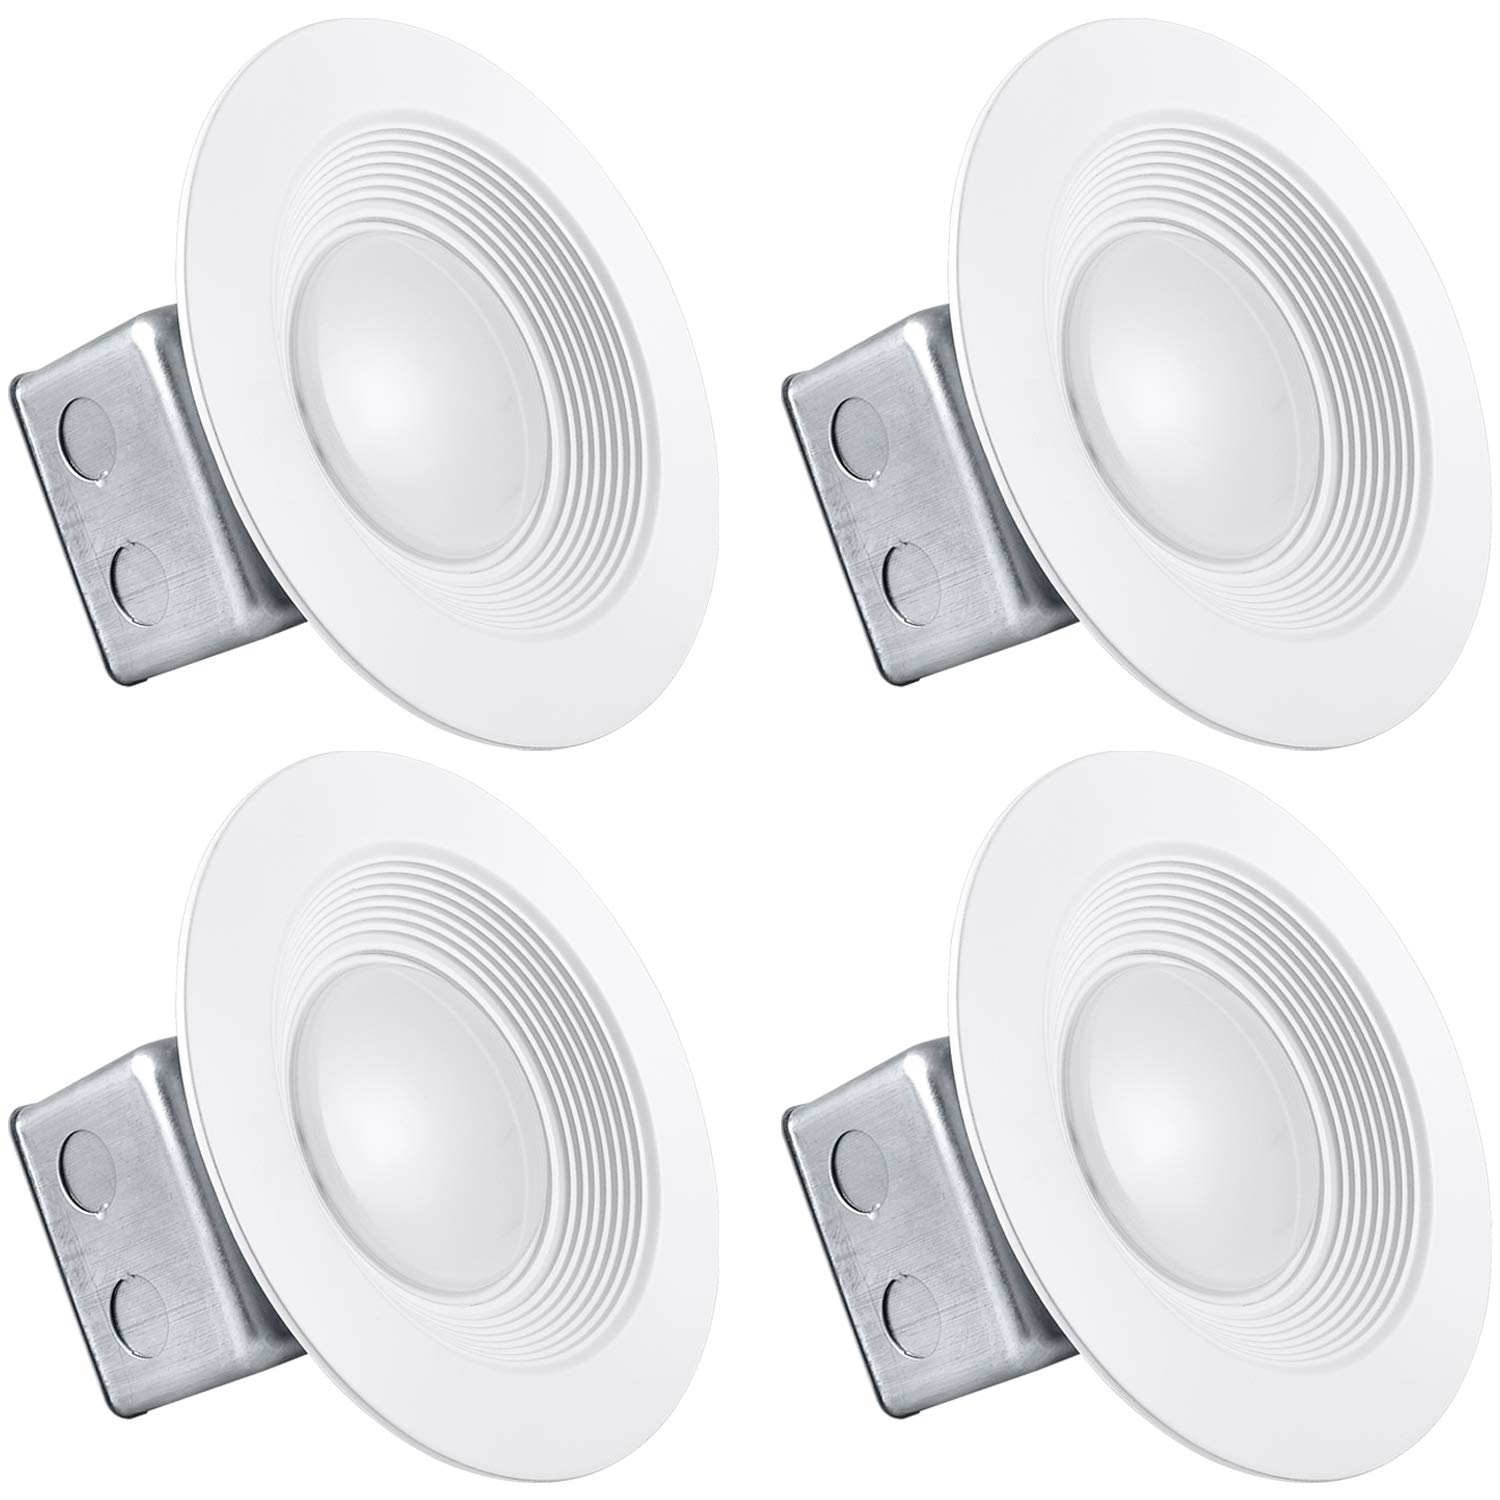 Luxrite 5/6 Inch LED Recessed Light with Junction Box, 15W, 4000K Cool White, Dimmable Airtight Downlight, 1050 Lumens, Energy Star, IC & Wet Rated, 120V - 277V, Recessed Lighting Kit (4 Pack)